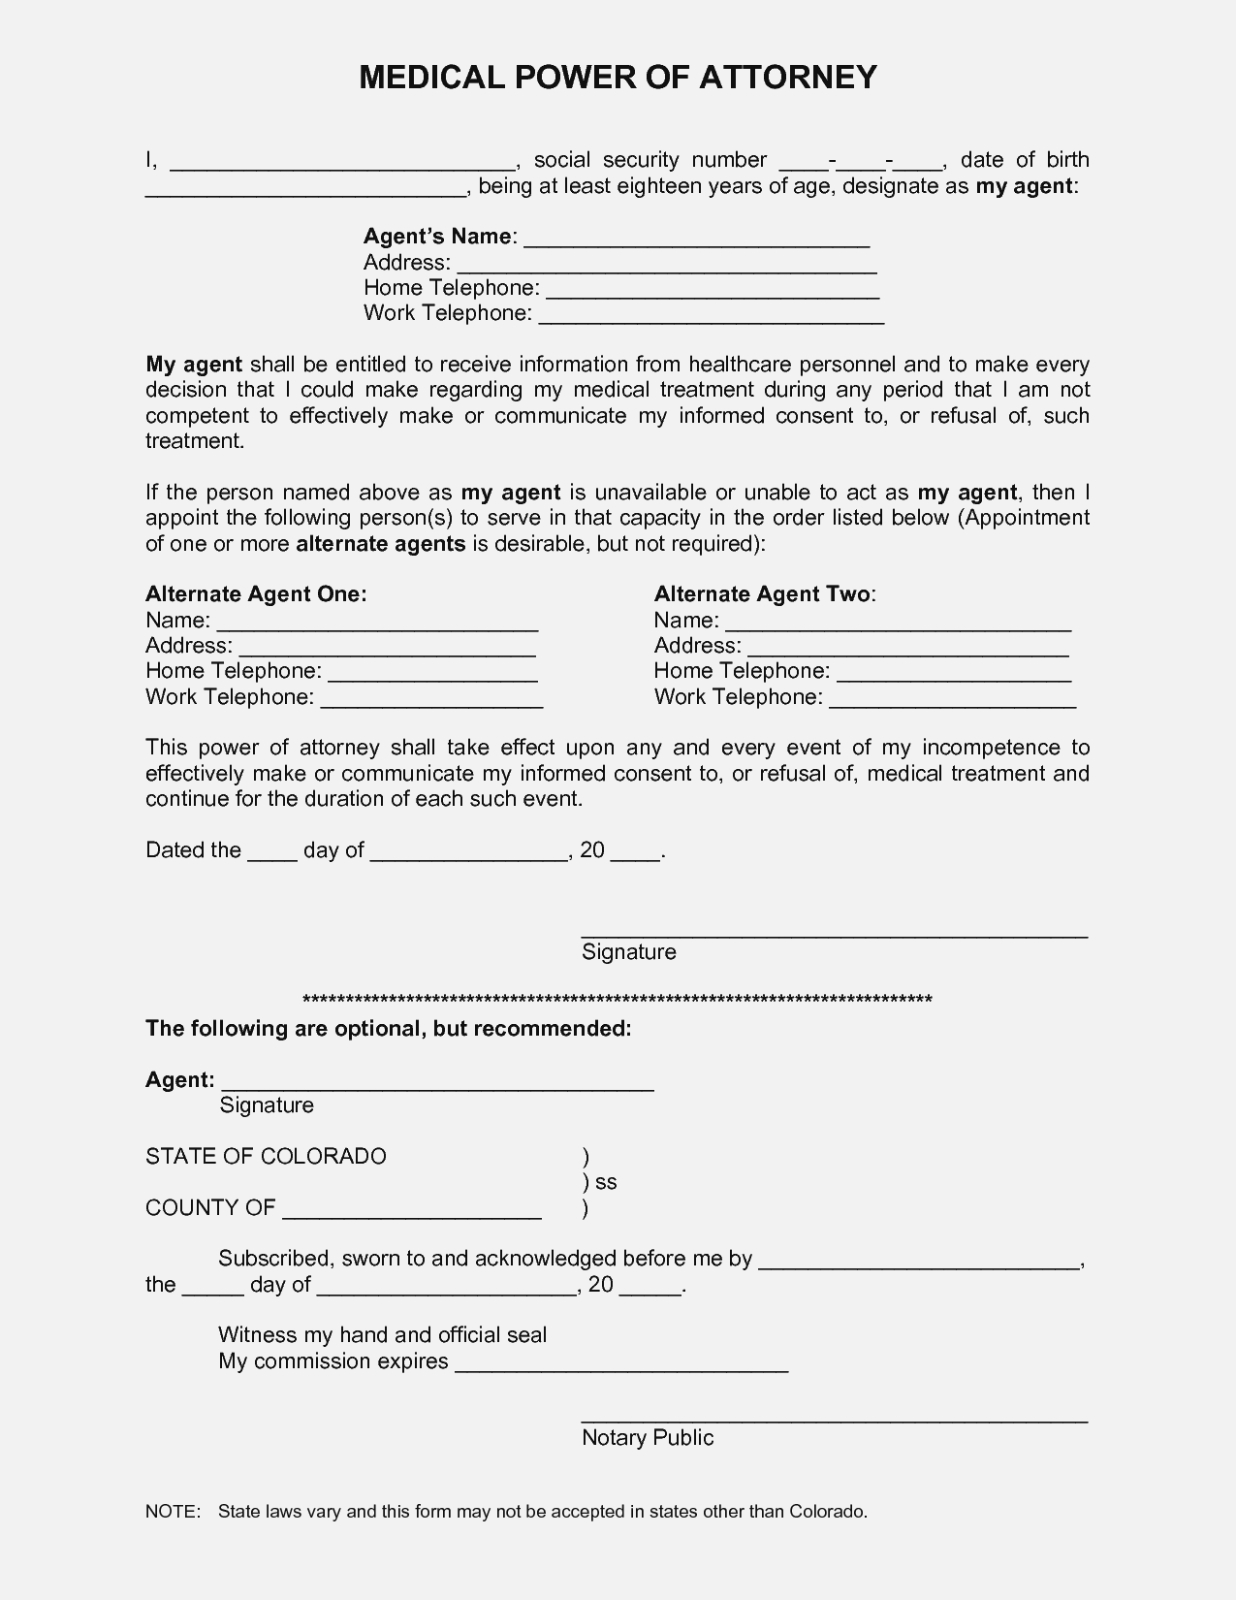 The Latest Trend In Online | The Invoice And Form Template - Free Printable Power Of Attorney Forms Online